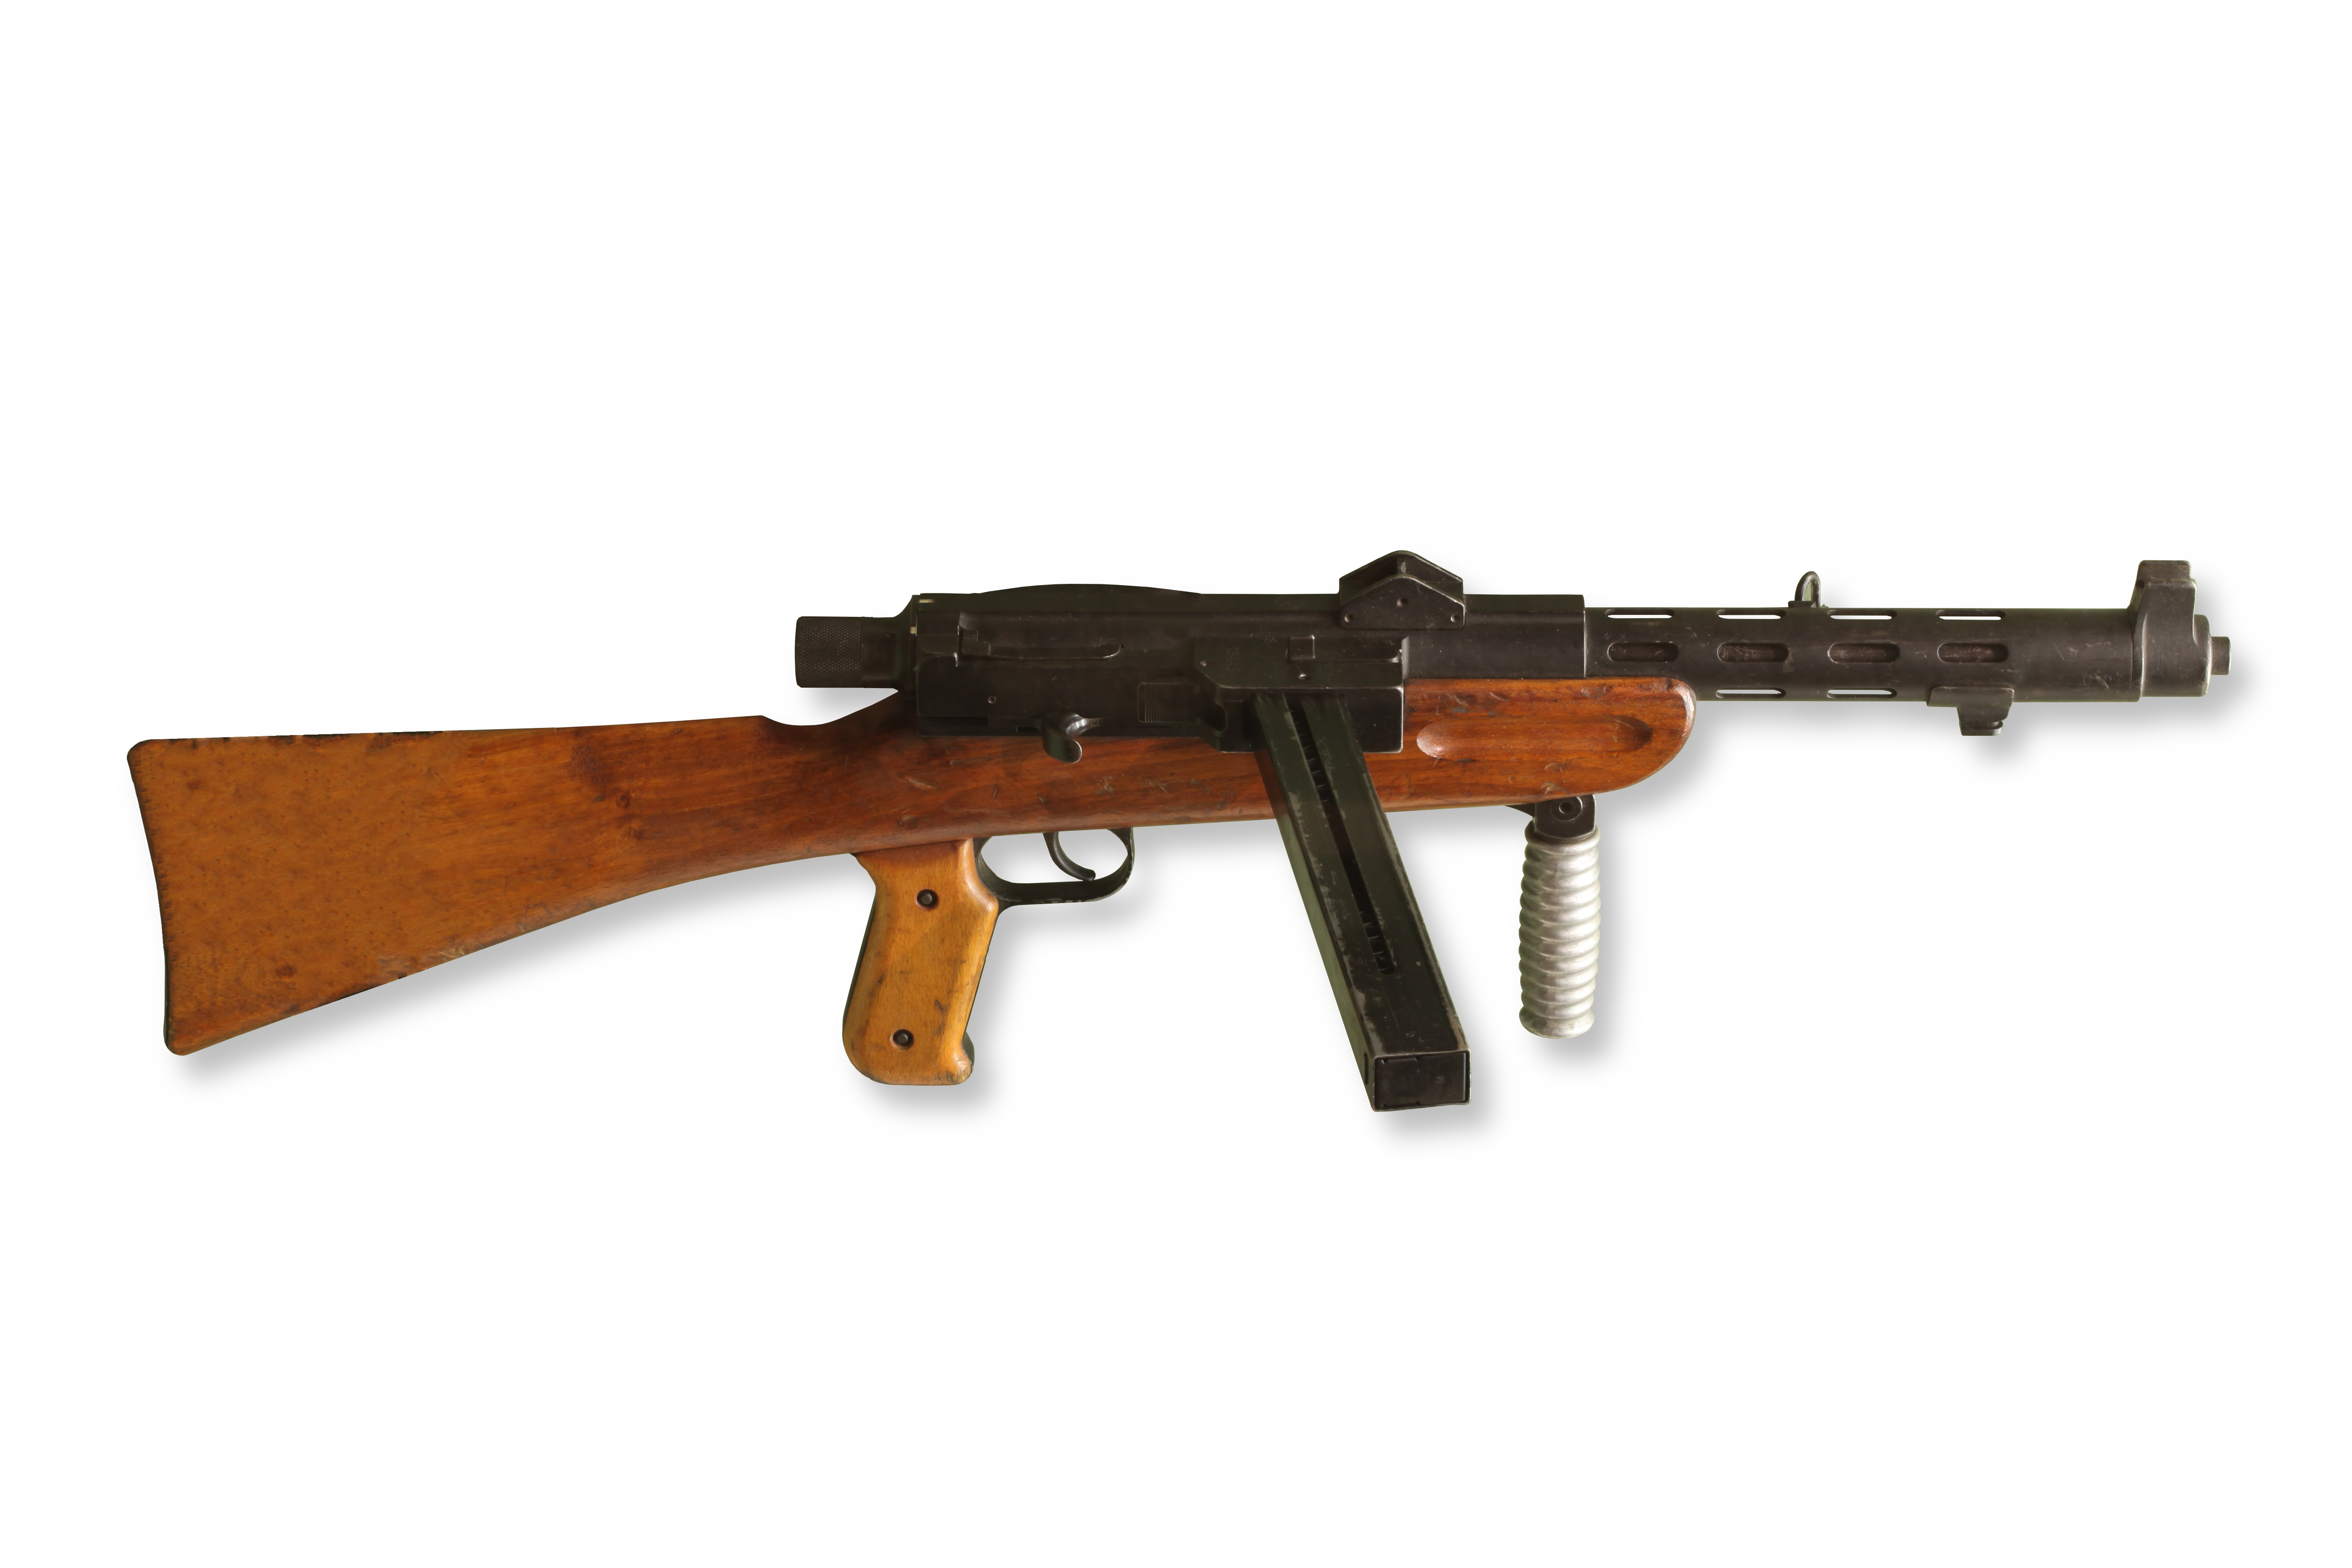 File:Furrer submachine gun IMG 3080.jpg - Wikimedia Commons